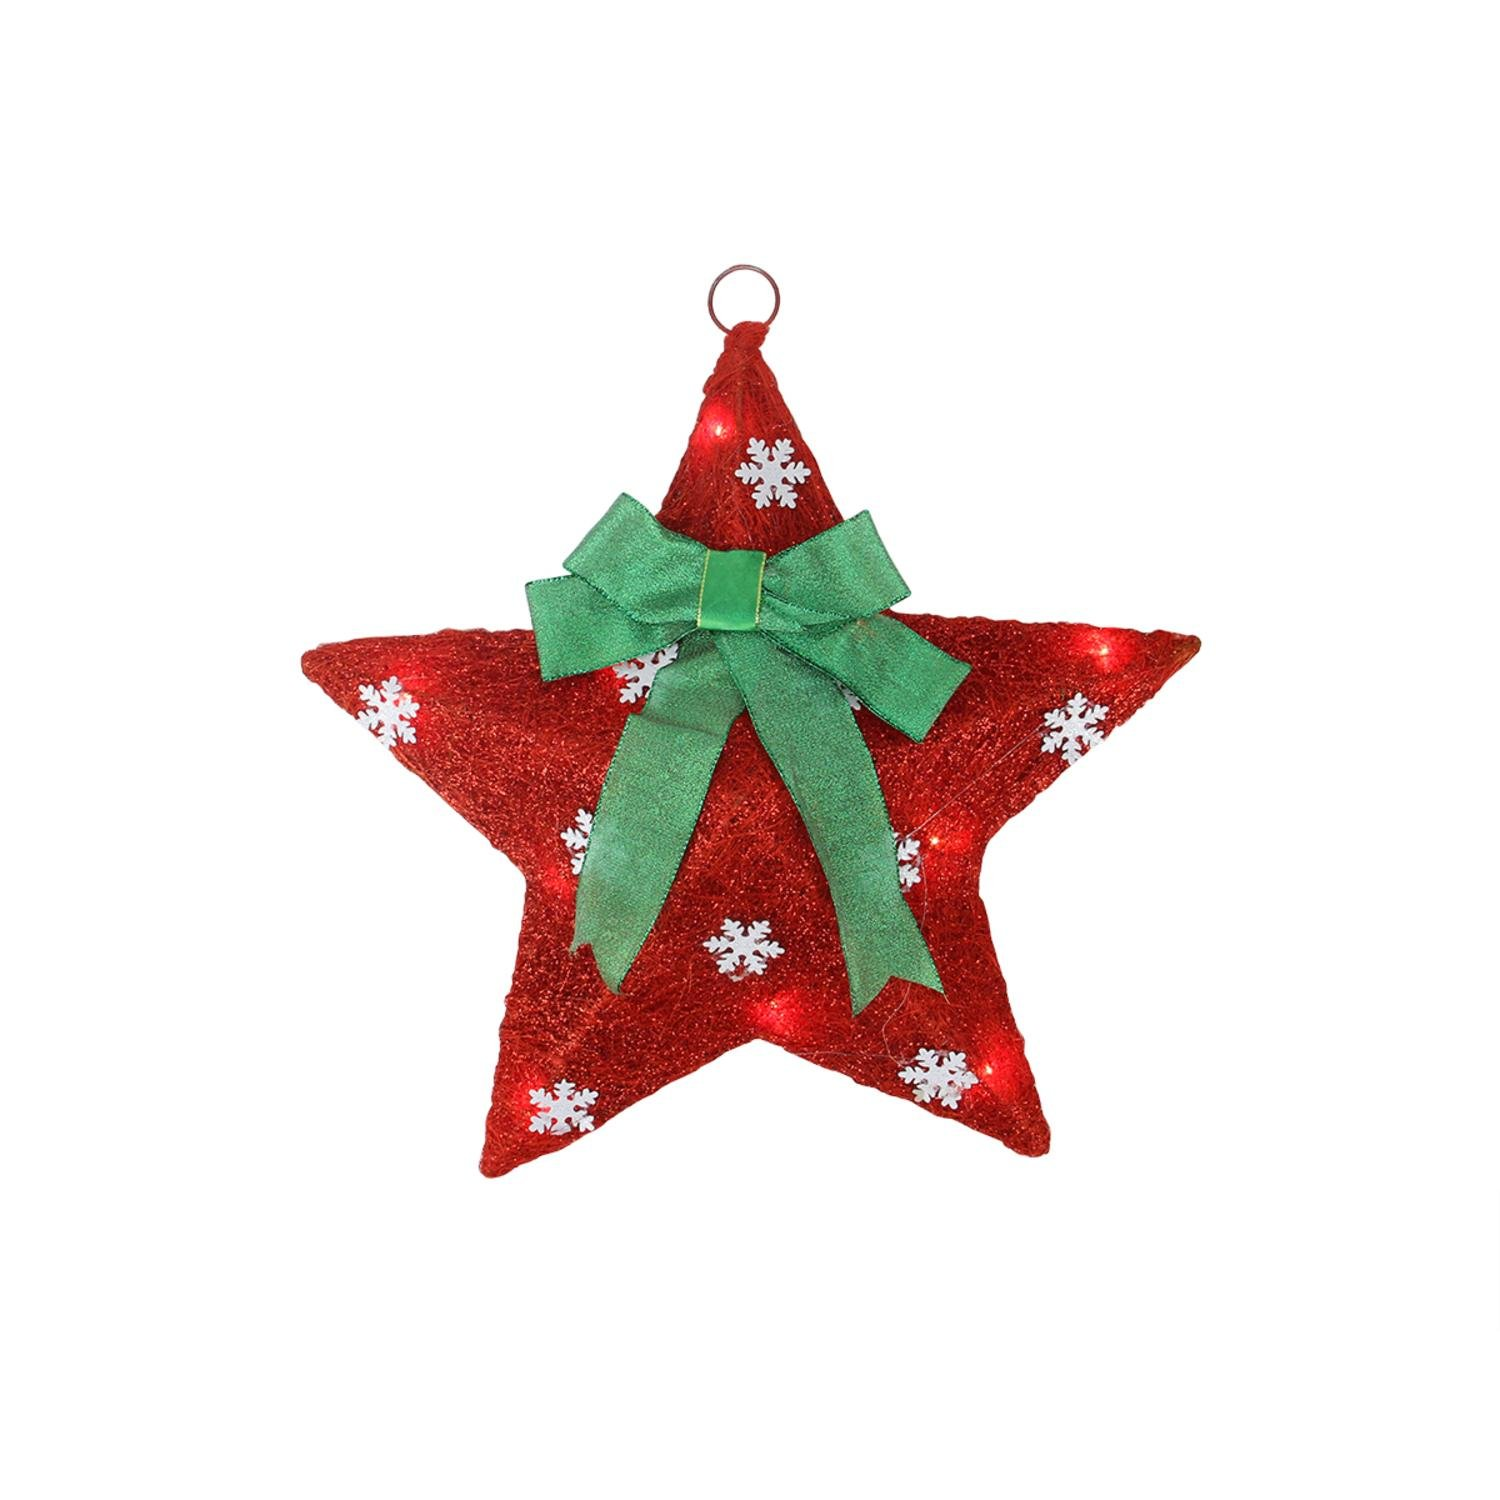 Northlight Lighted and Green Sisal Hanging Christmas Star Window Decoration, 17'', Red